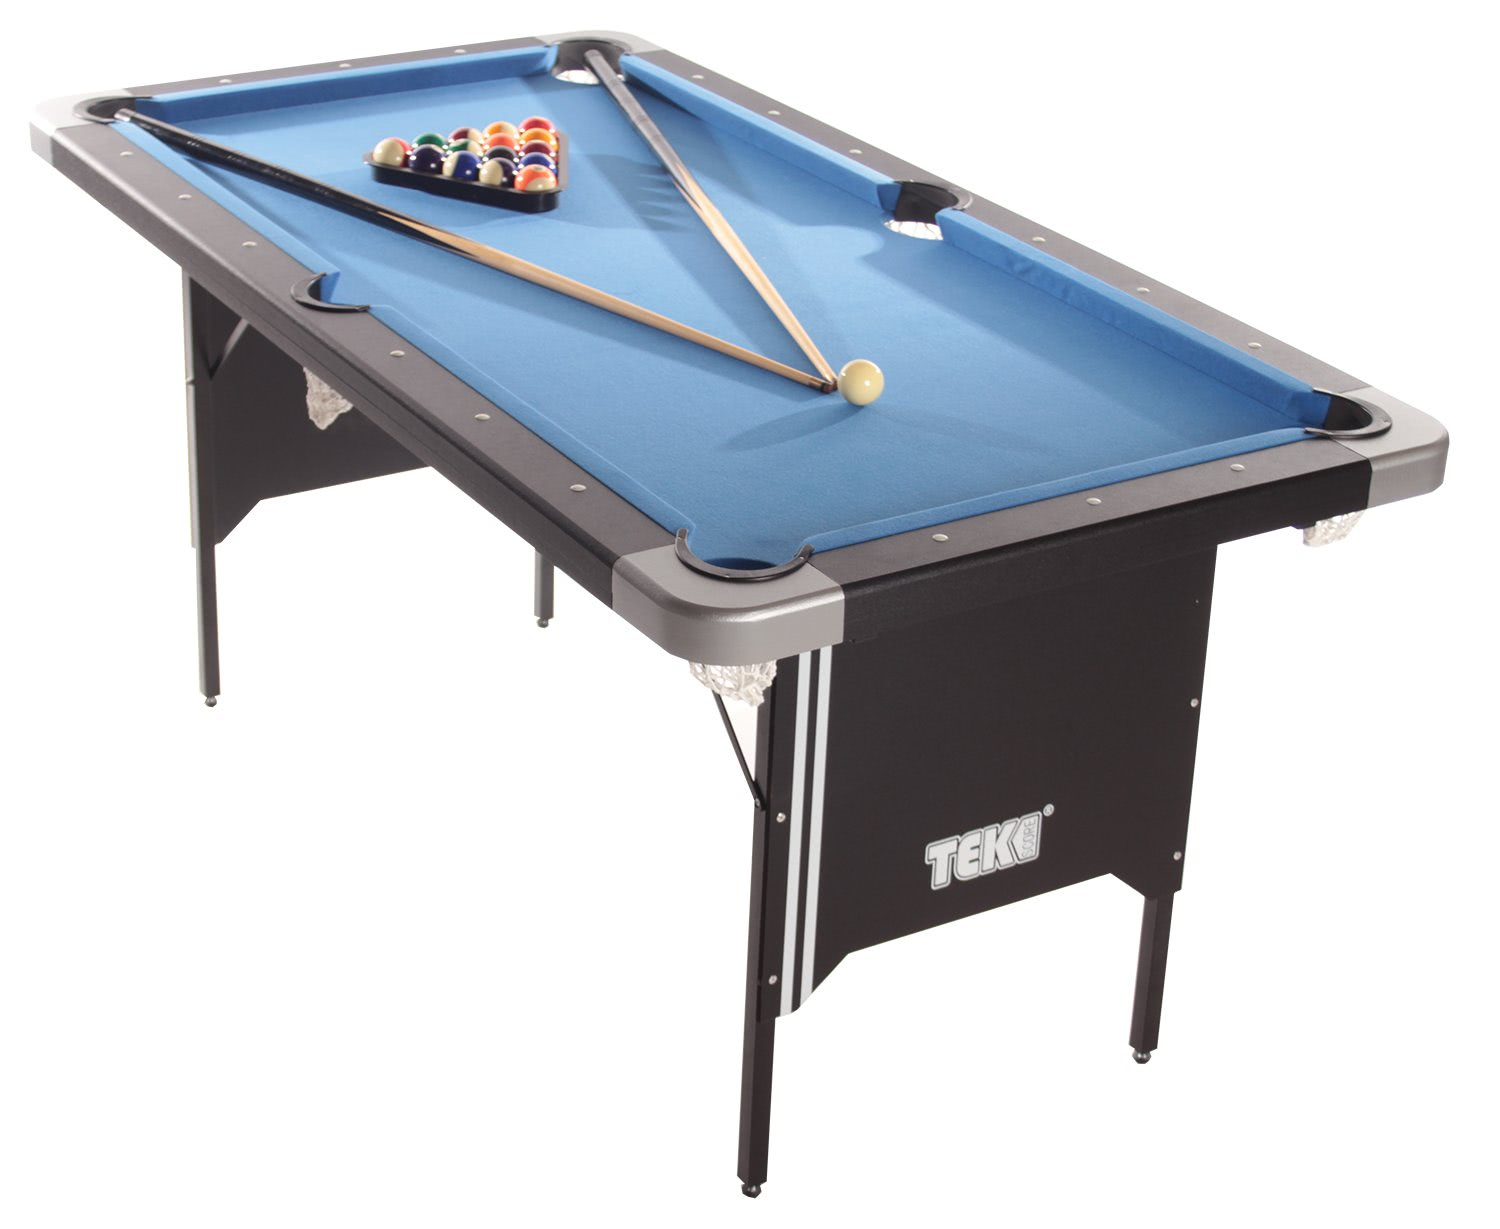 Folding legs pool table for sale - Tekscore Folding Pool Table With Table Tennis Top